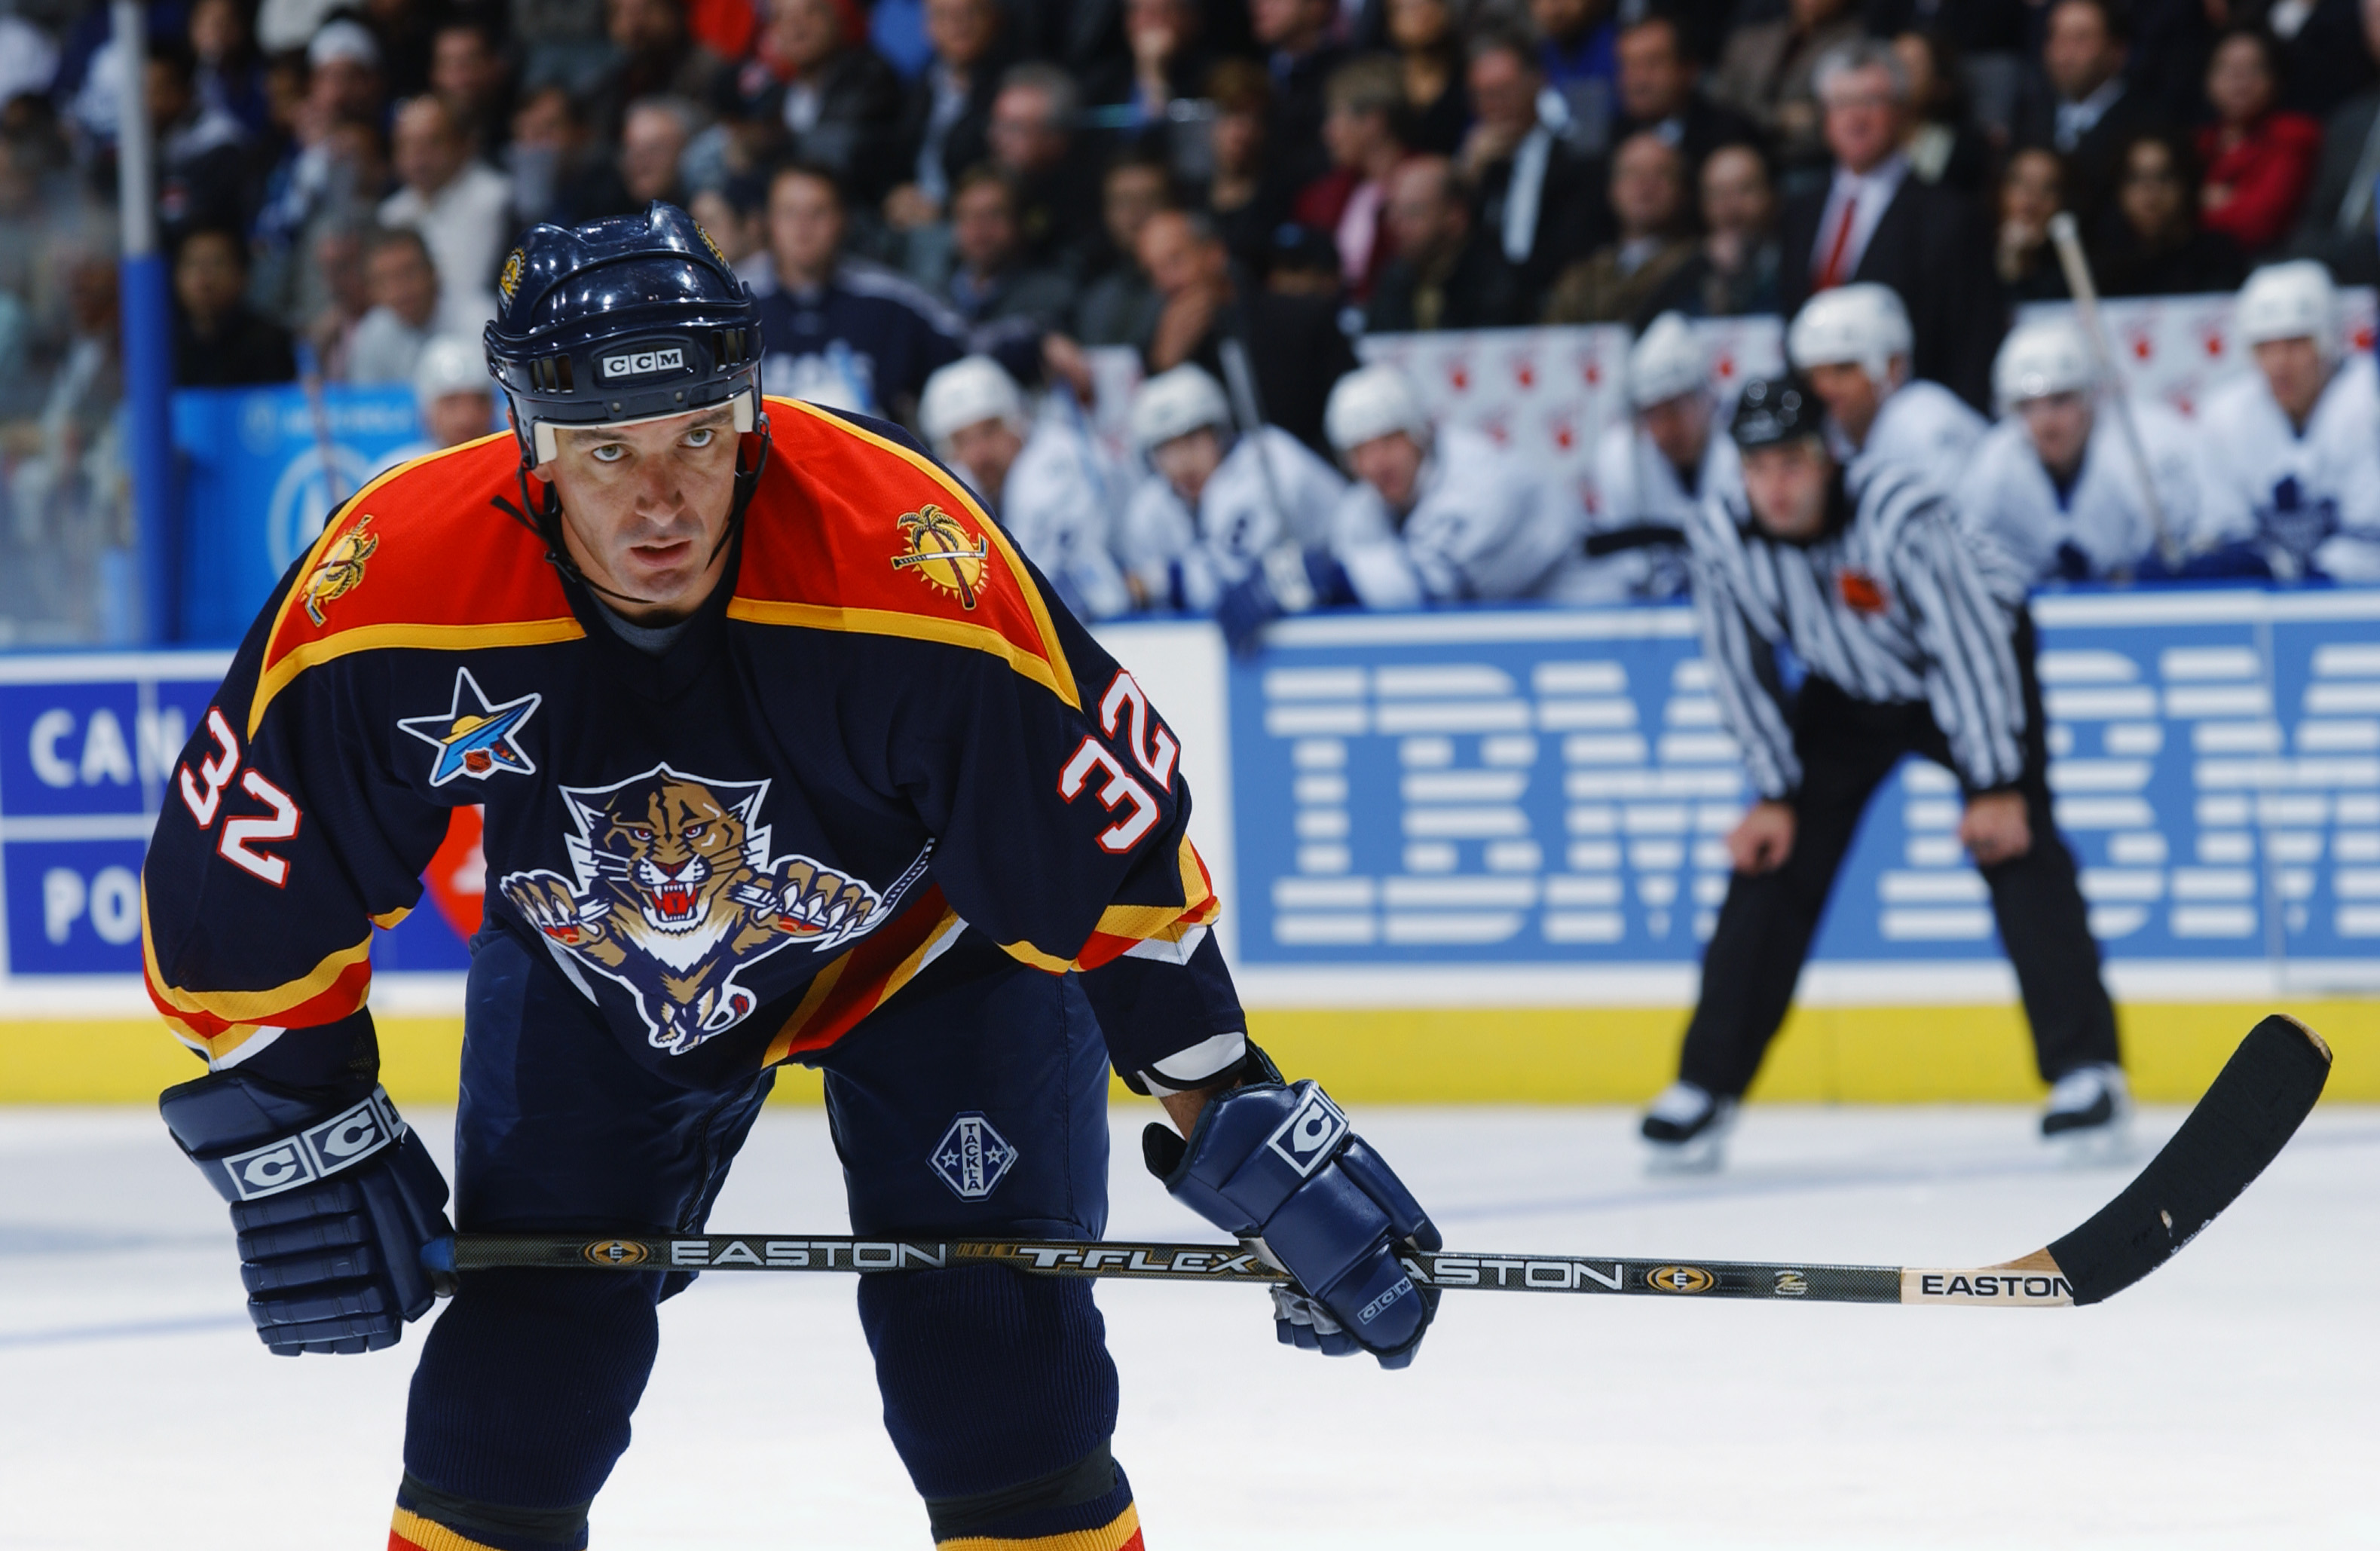 TORONTO - OCTOBER 23:  Left wing Stephane Matteau #32 of the Florida Panthers gets set for a face off against the Toronto Maple Leafs during the game on October 23, 2002 at the Air Canada Centre in Toronto, Canada.  The Panthers won 4-1.  (Photo by Dave S